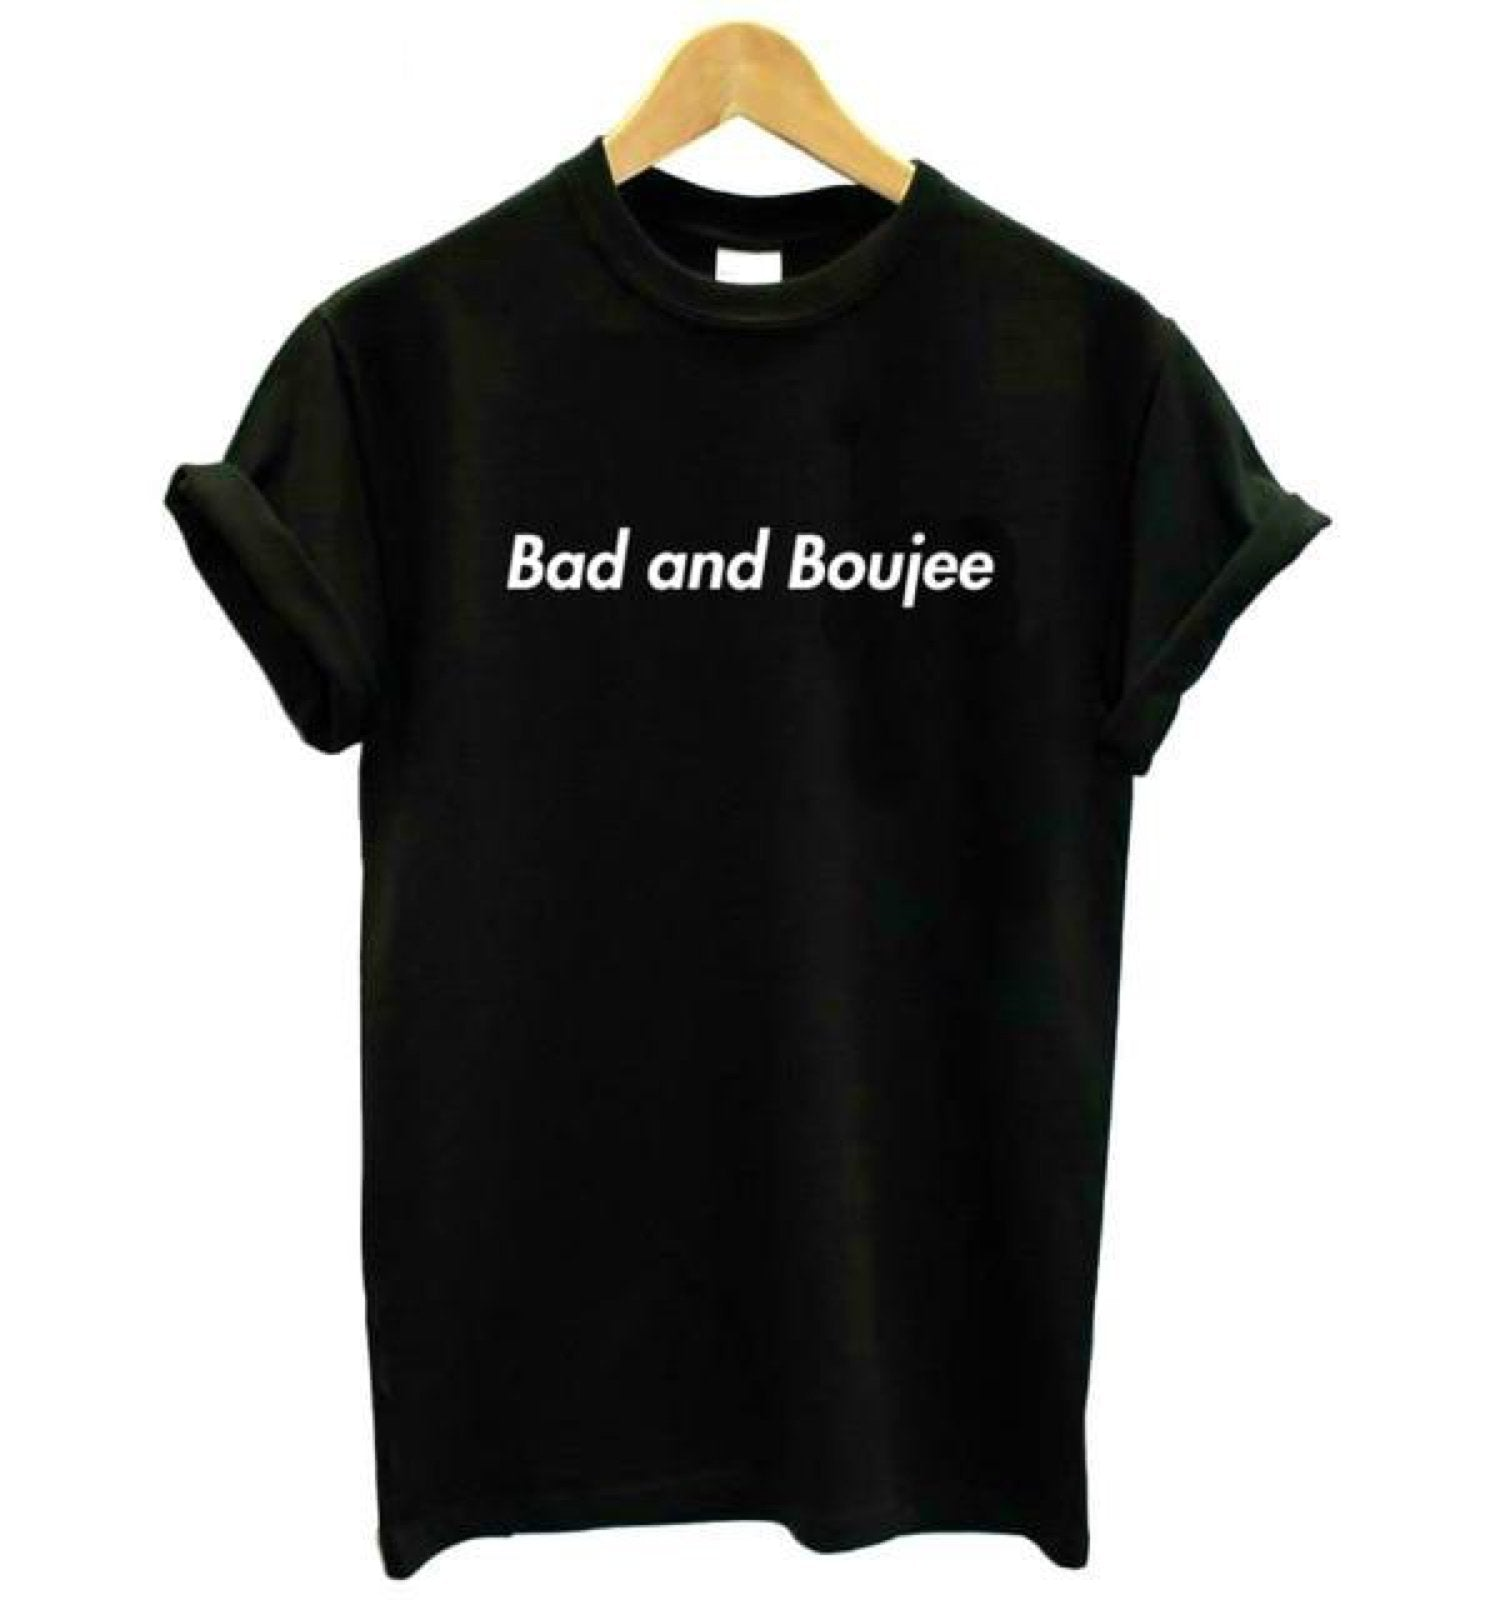 Bad and Boujee Tee - Always Poppin Shop